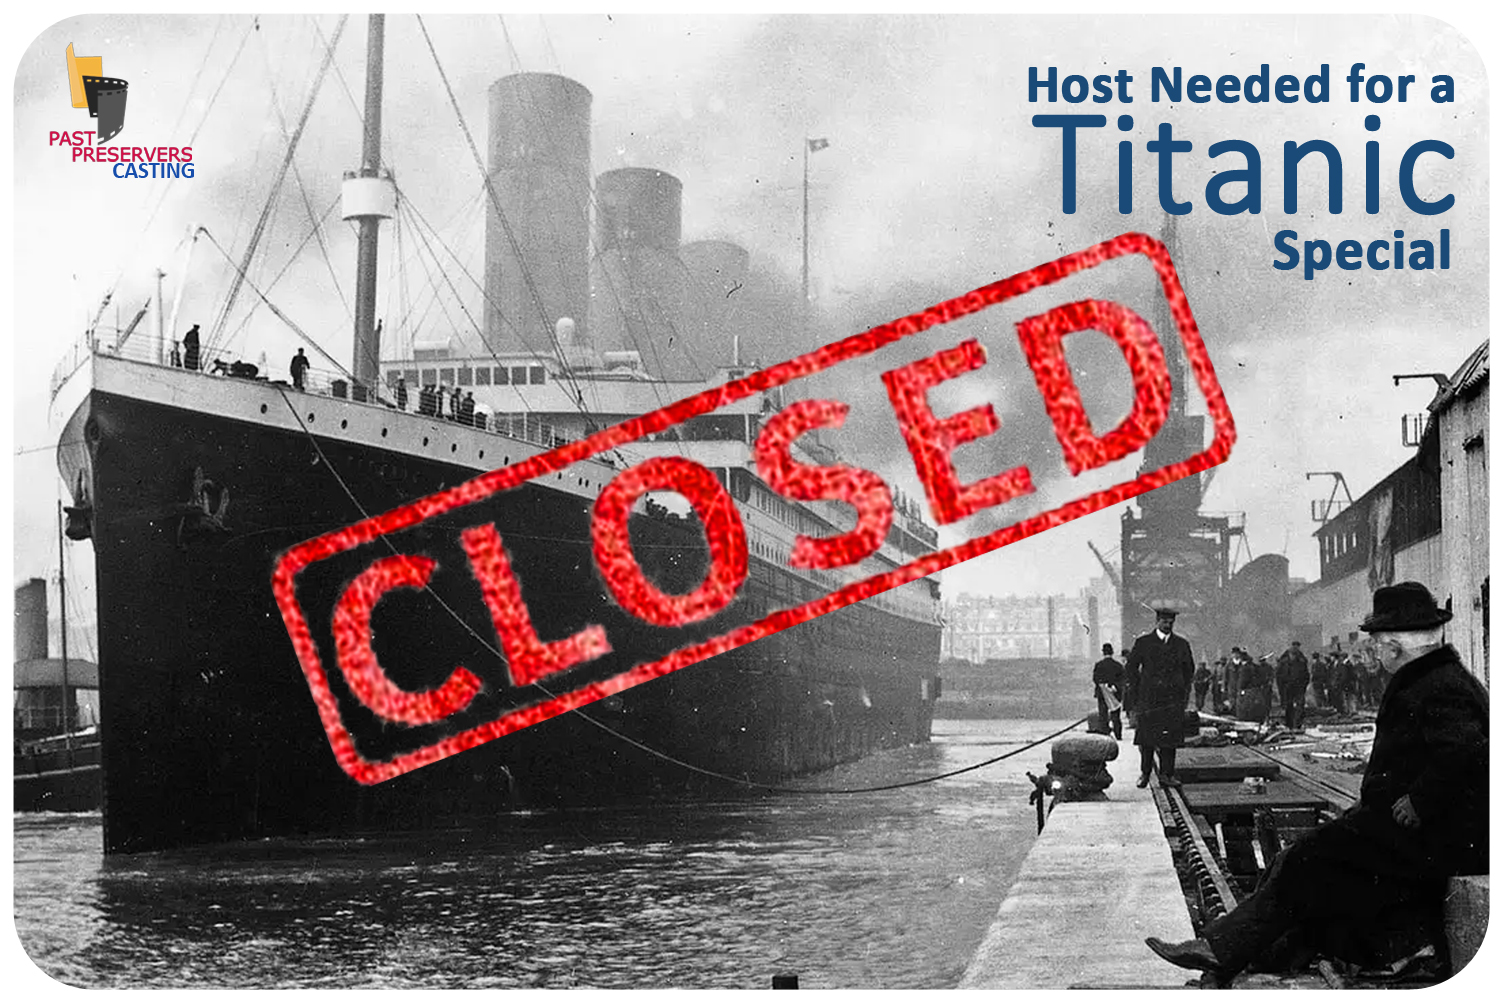 Host Needed for a Titanic Special!